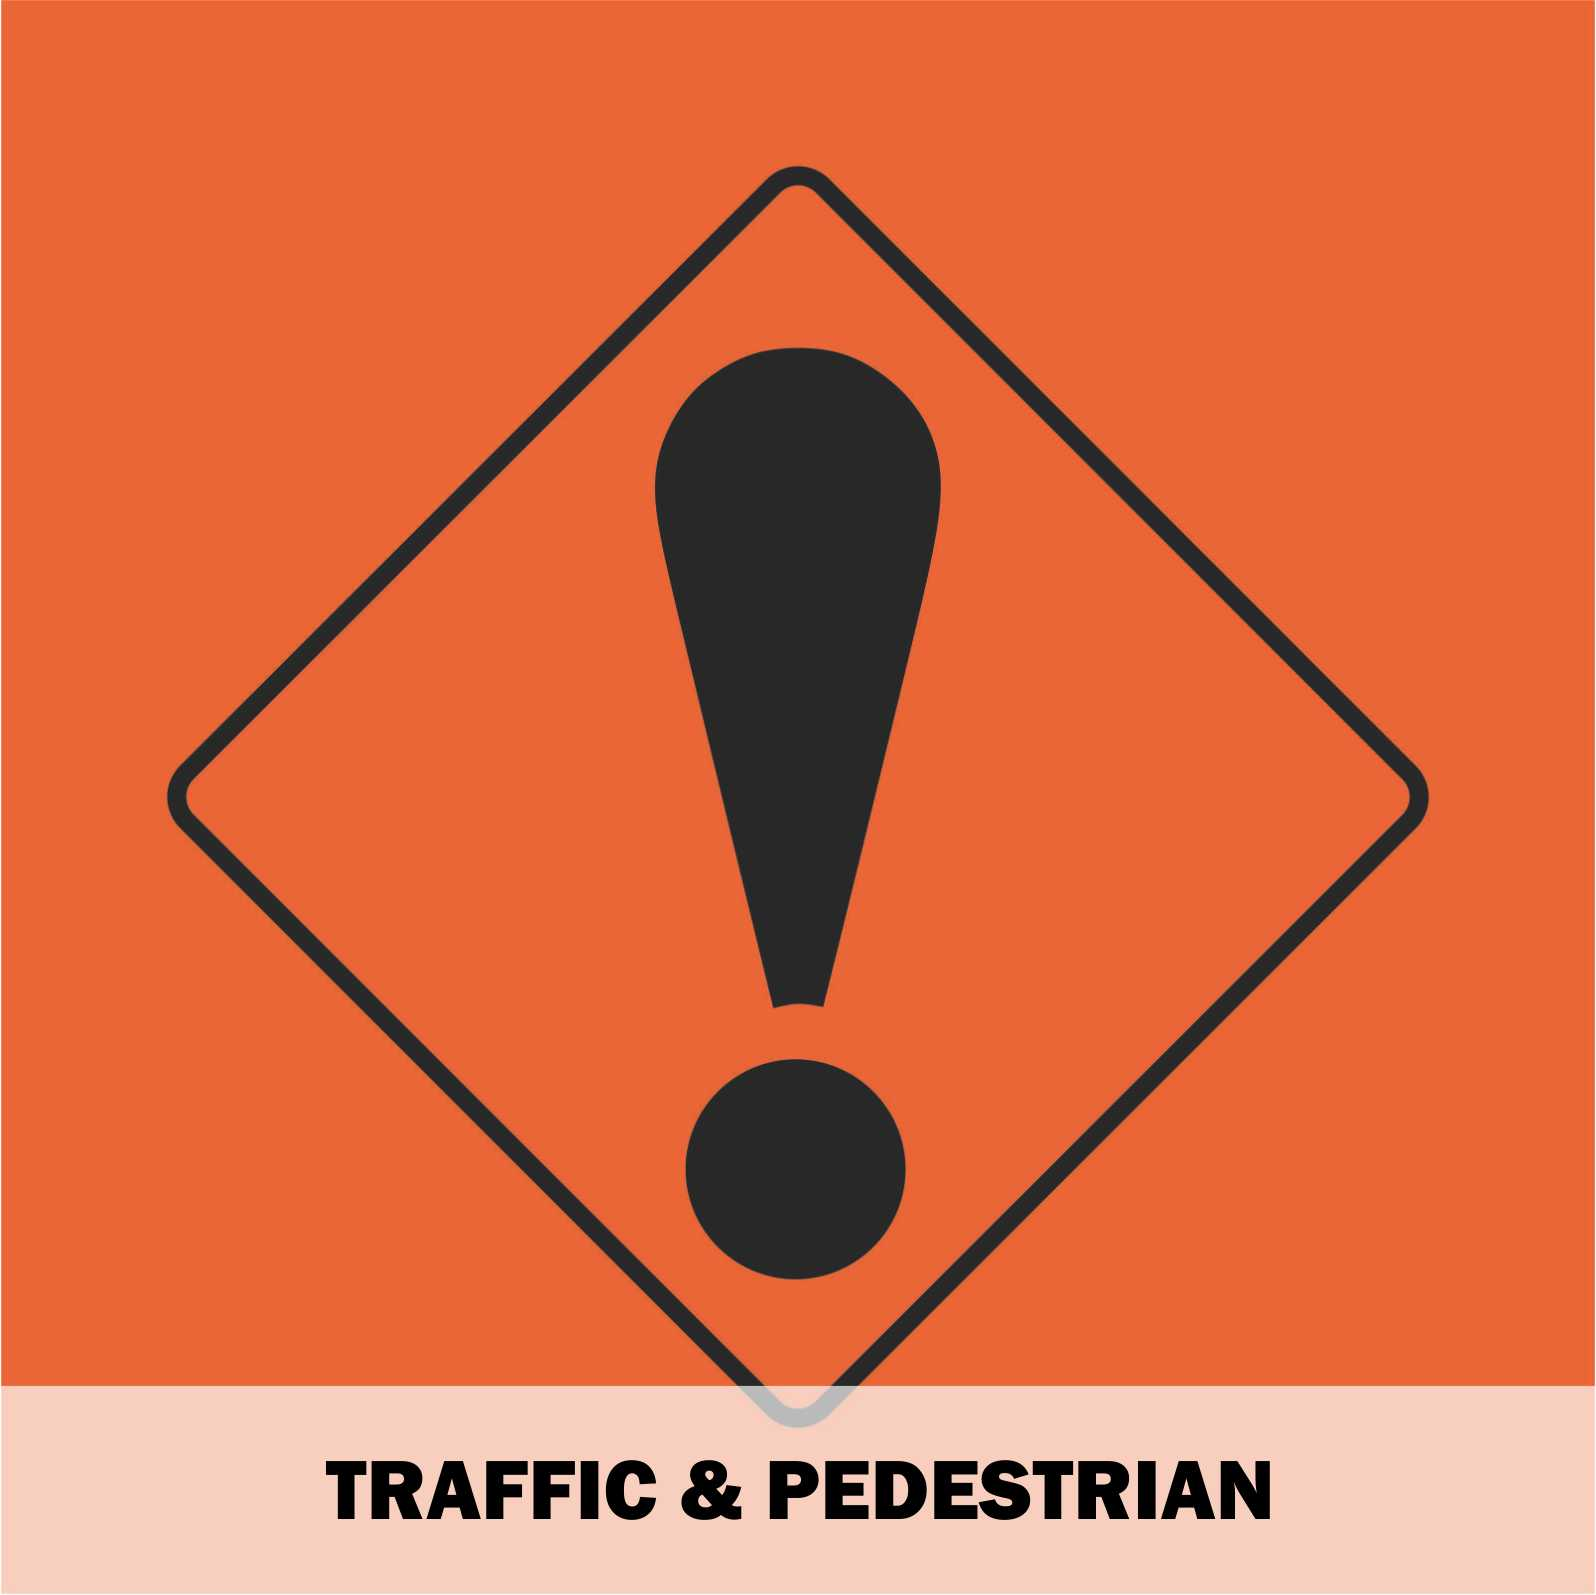 Traffic & Pedestrian